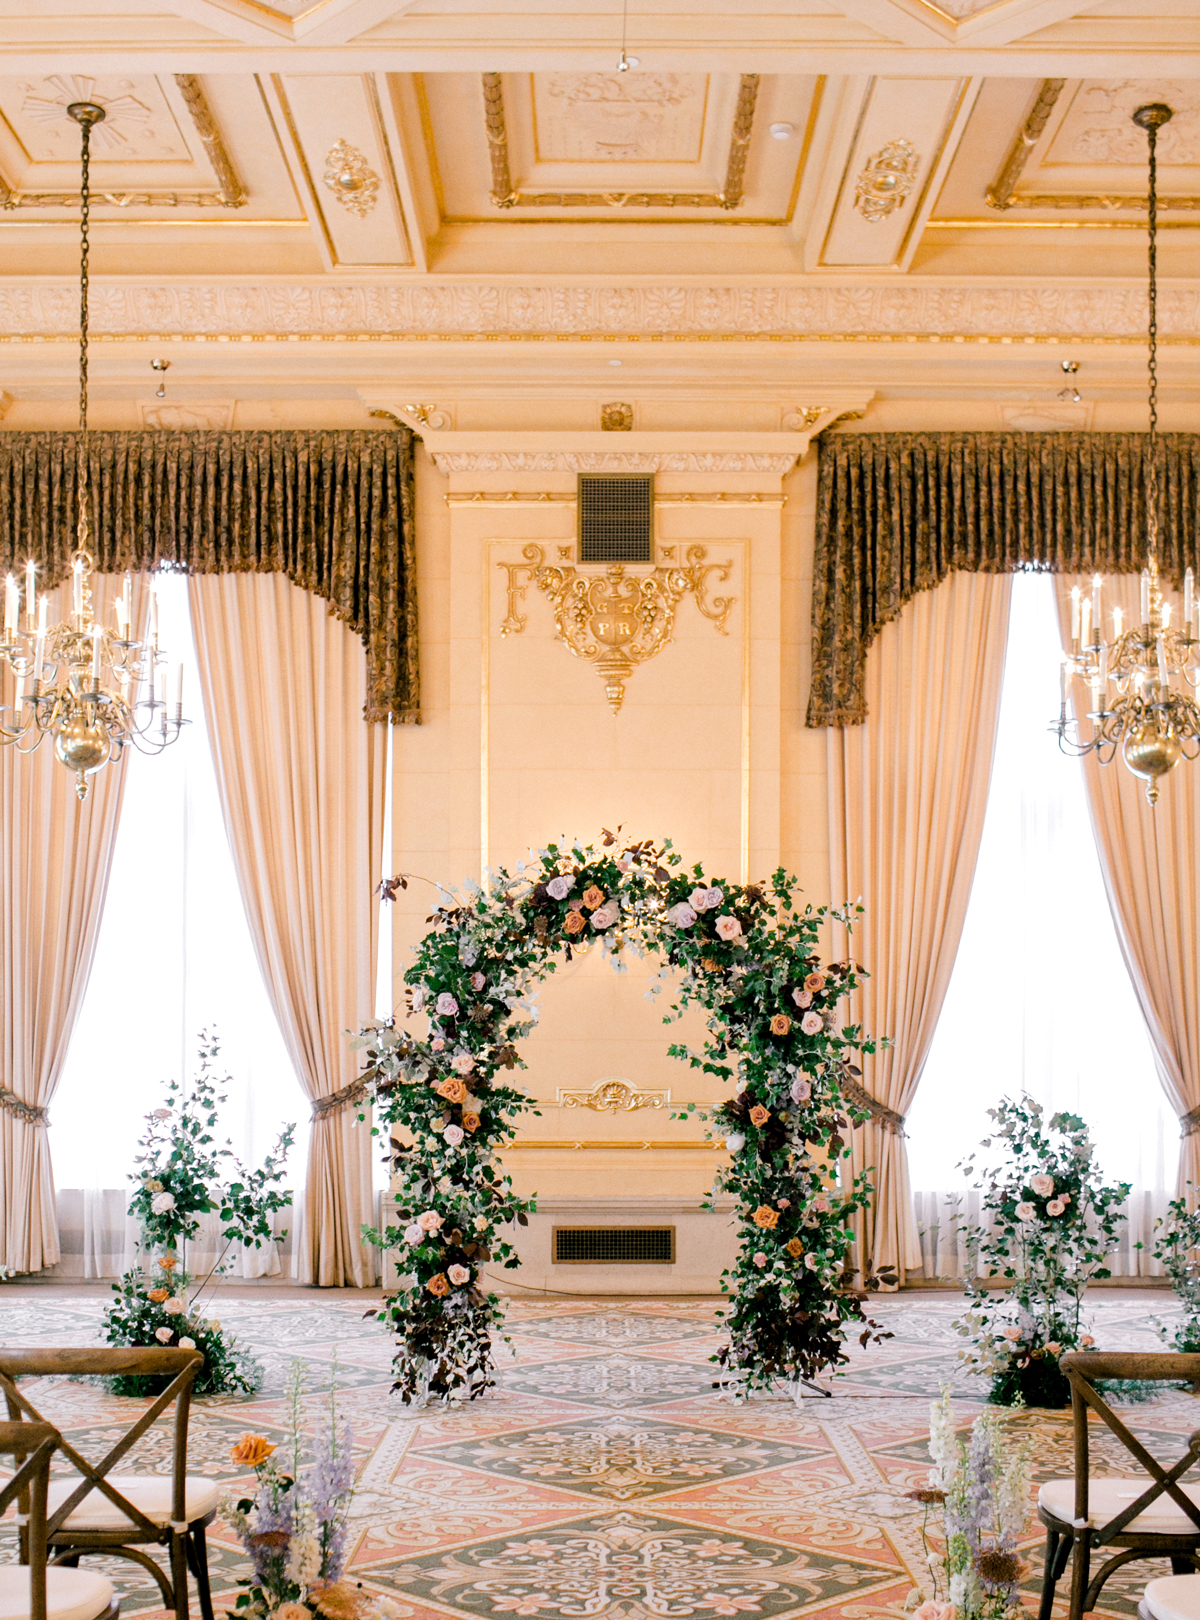 wedding ceremony setup ornate room decorated with flowers and flower arch